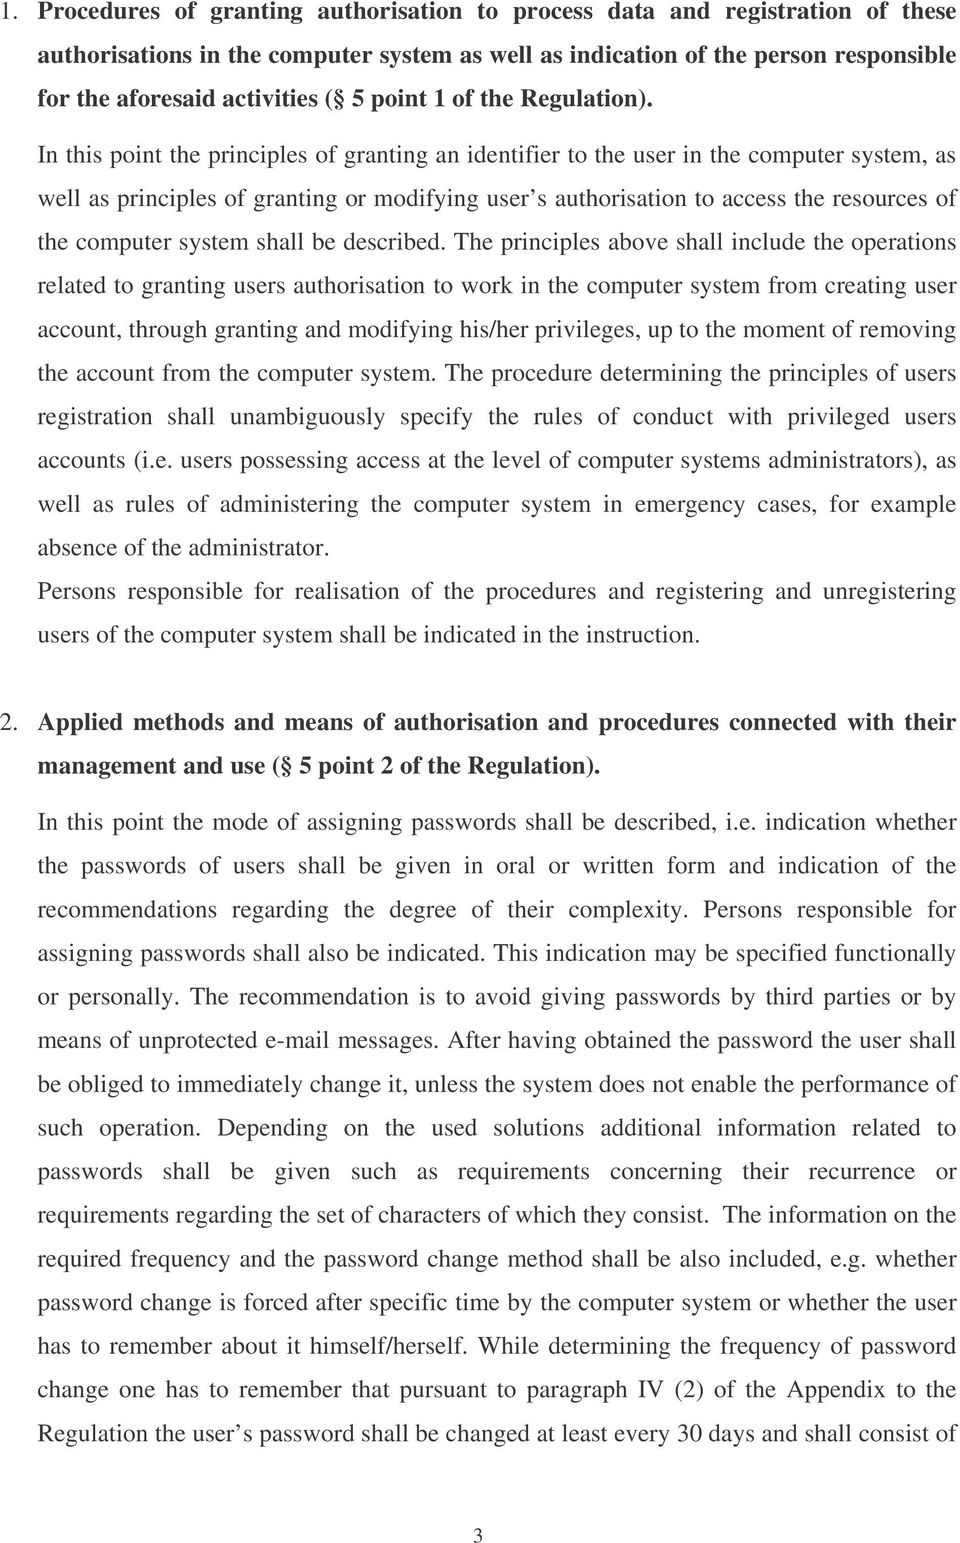 In this point the principles of granting an identifier to the user in the computer system, as well as principles of granting or modifying user s authorisation to access the resources of the computer